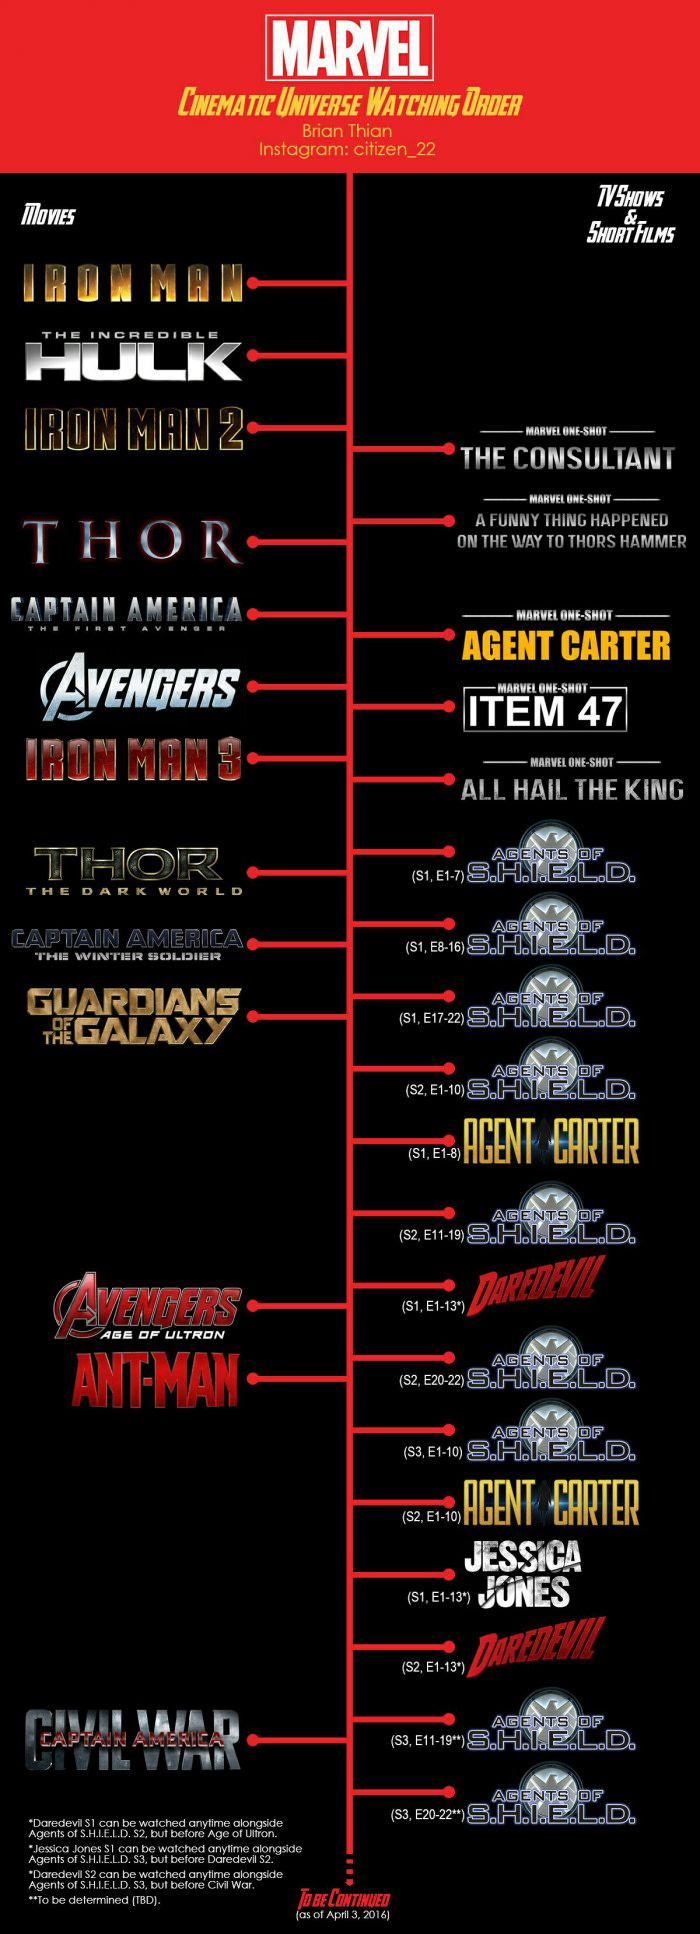 MCU, Marvel Cinematic Universe watching order